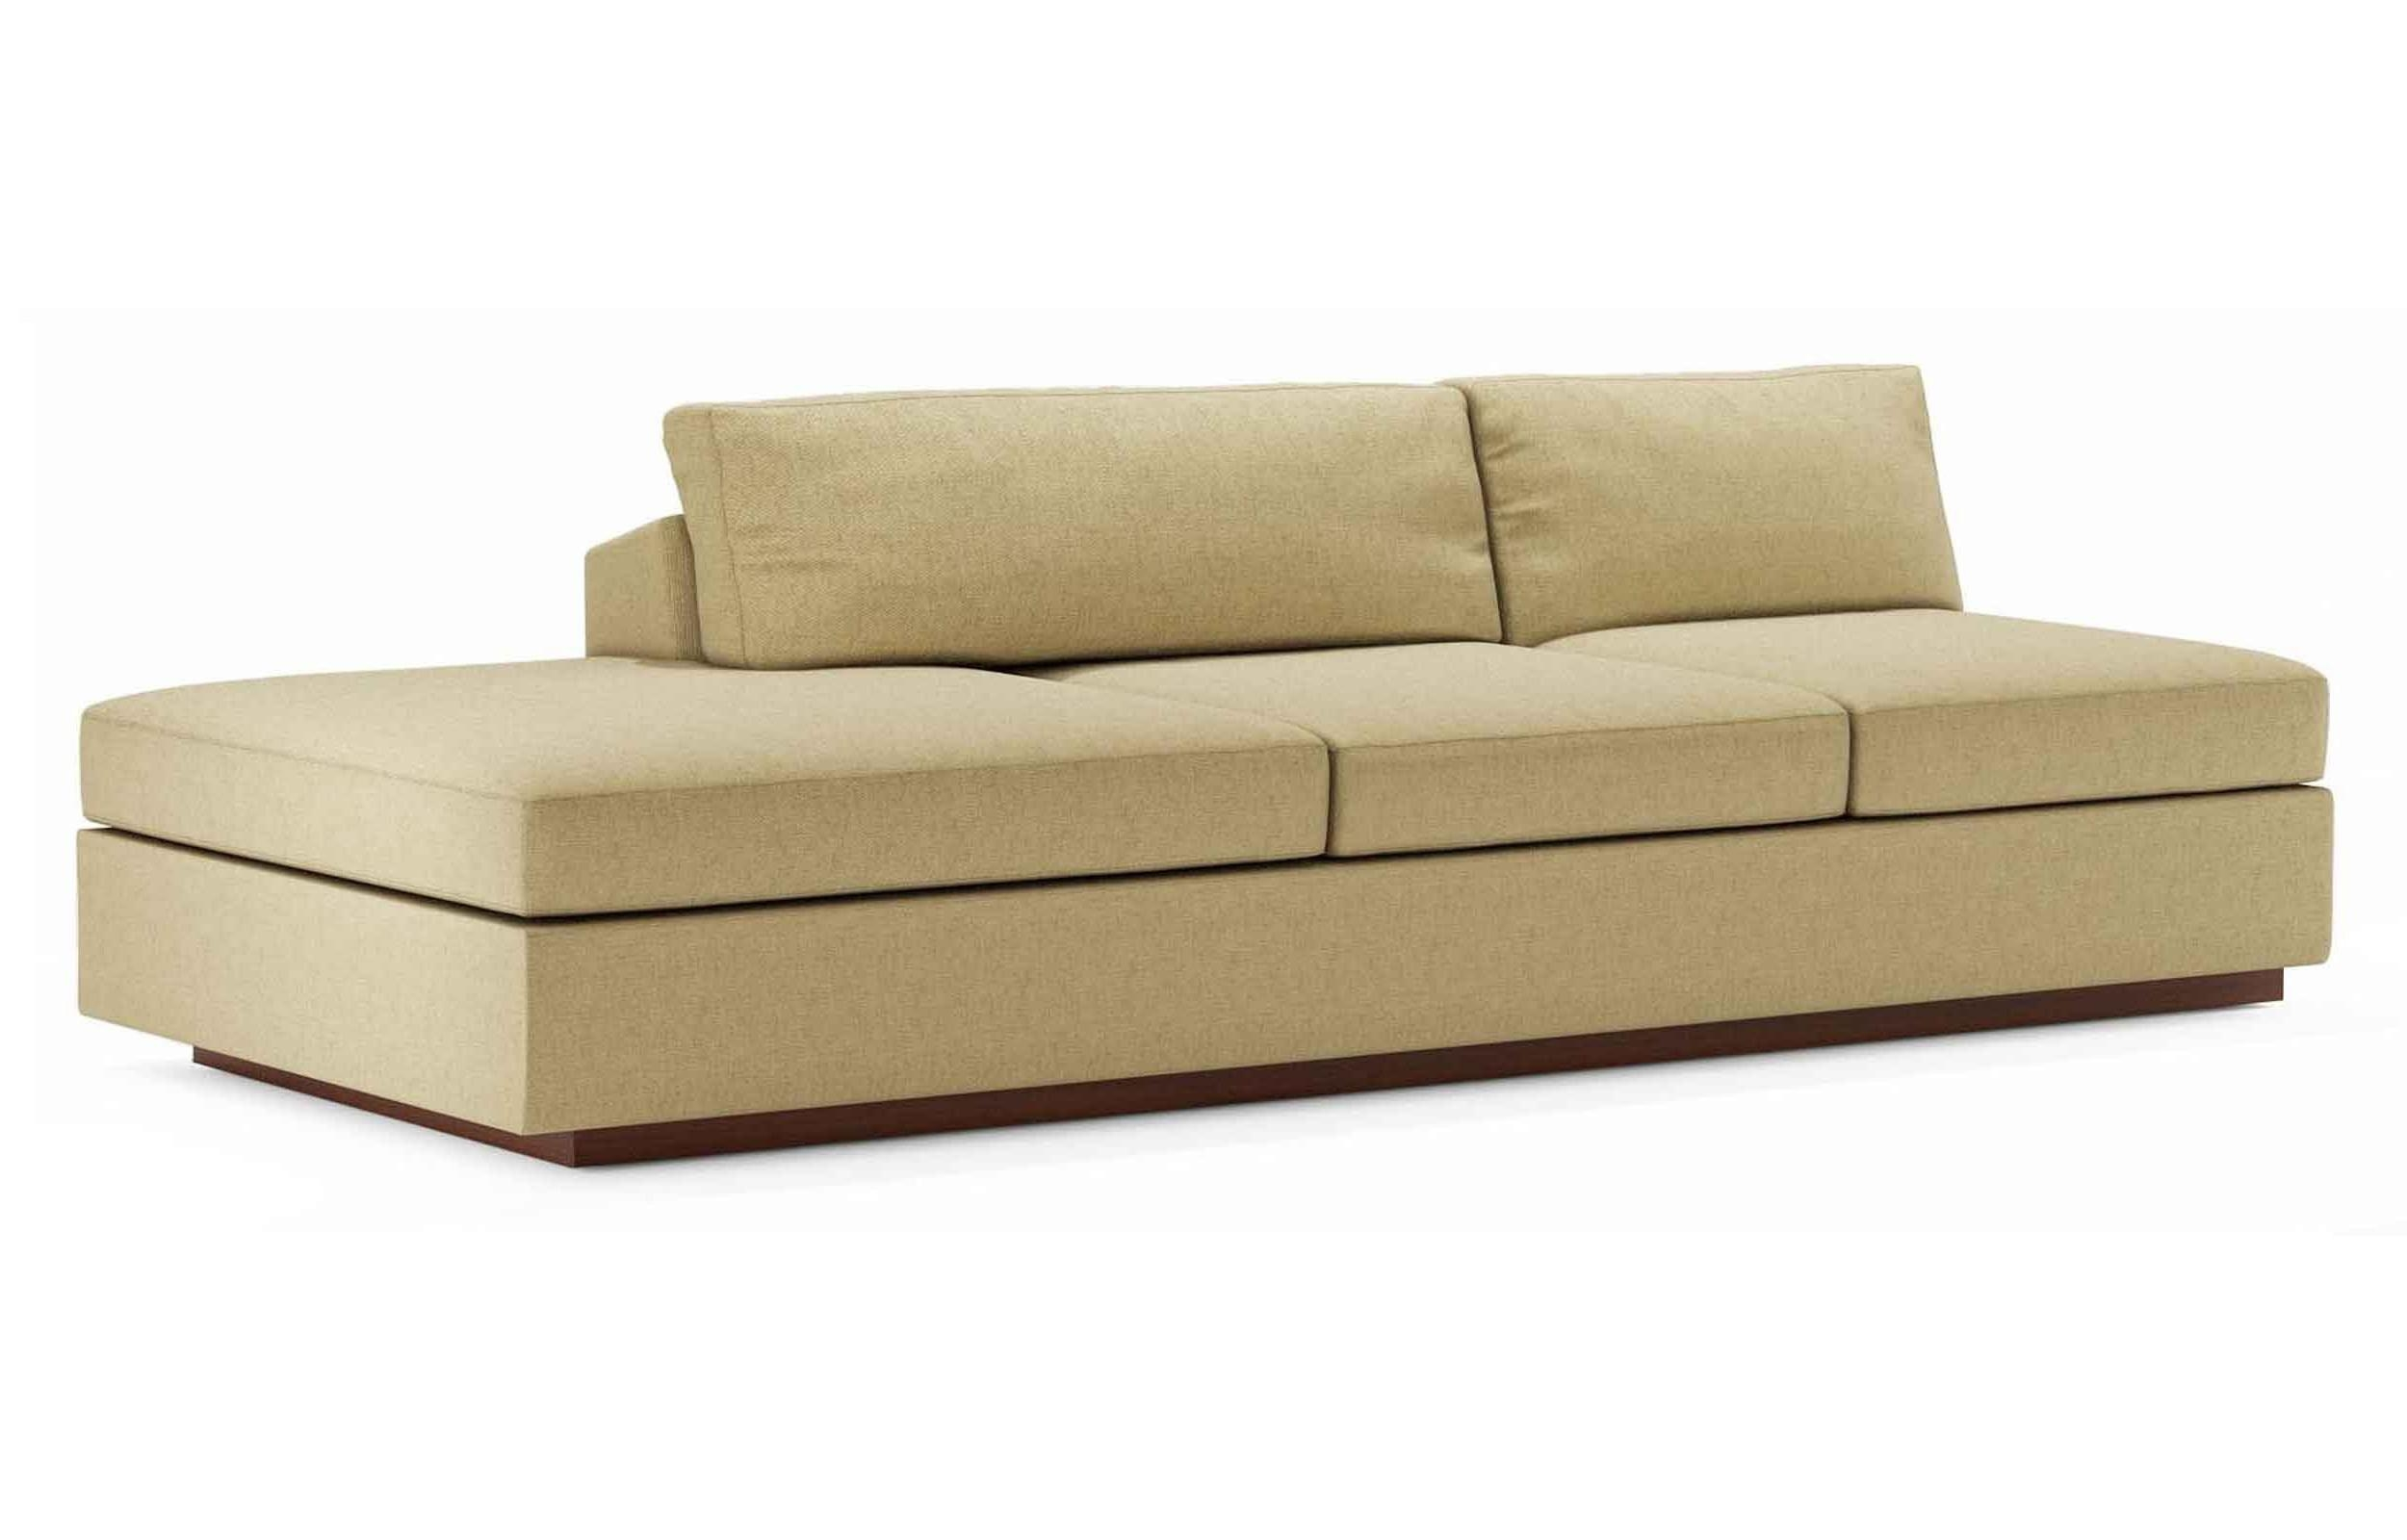 Lovely Armless Sleeper Sofa Marmsweb Marmsweb